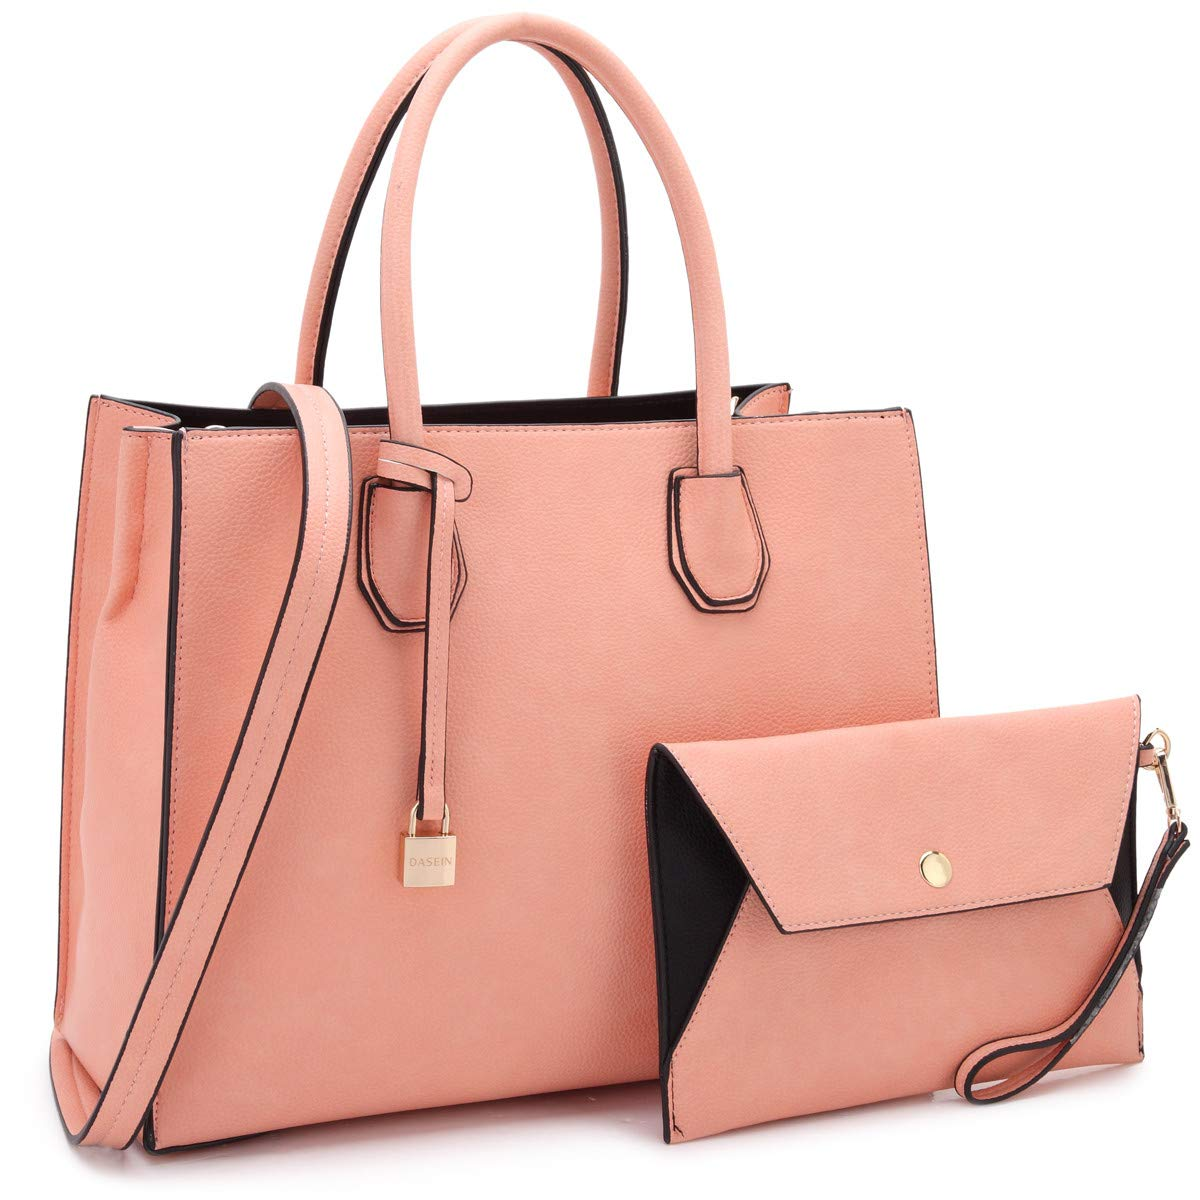 Women Fashion Handbag Matching wallet~Classic Women Satchel Tote Bag Shoulder Bags~Signature Women Designer Purse~Perfect Women Satchel handbag with Spring colors (FN-23-7661-PINK)